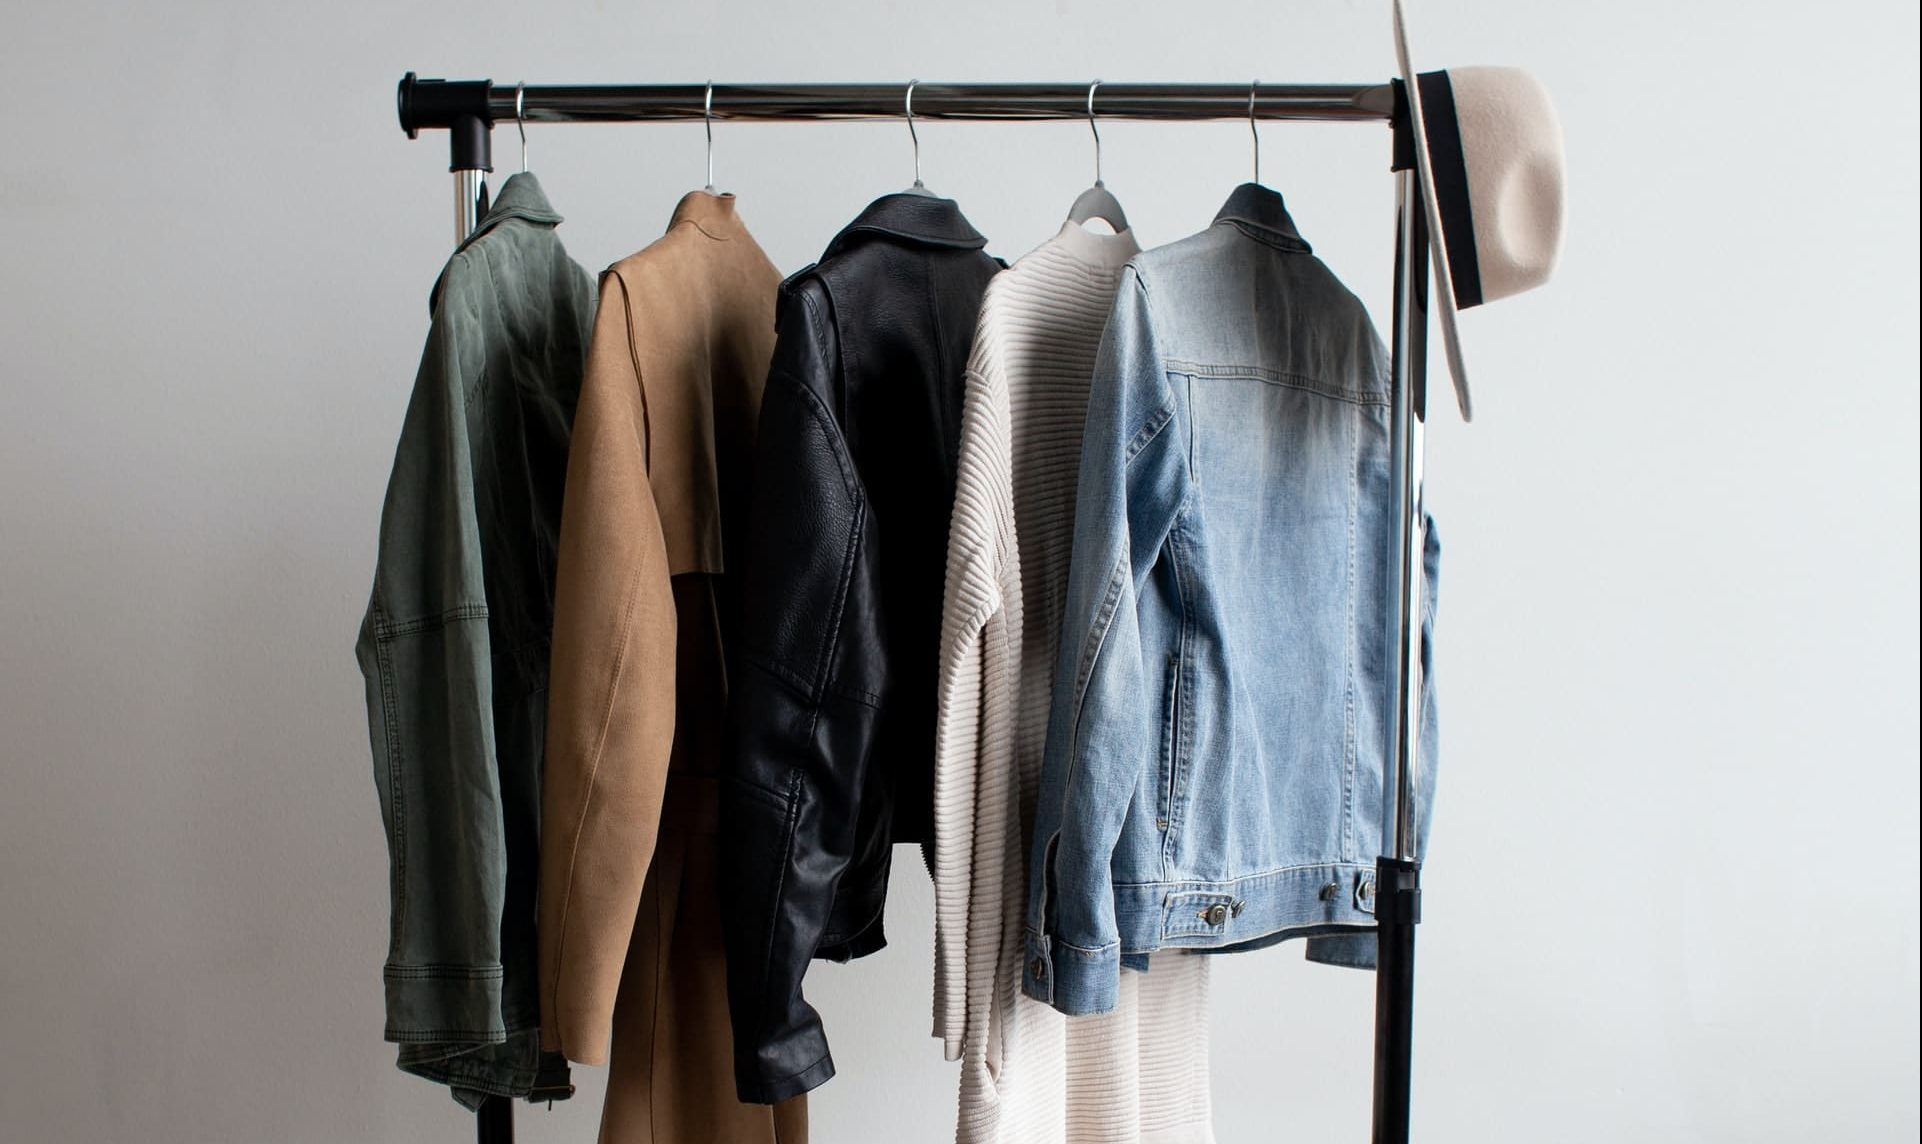 Winter wardrobe which you should include the first when storing your items during summer